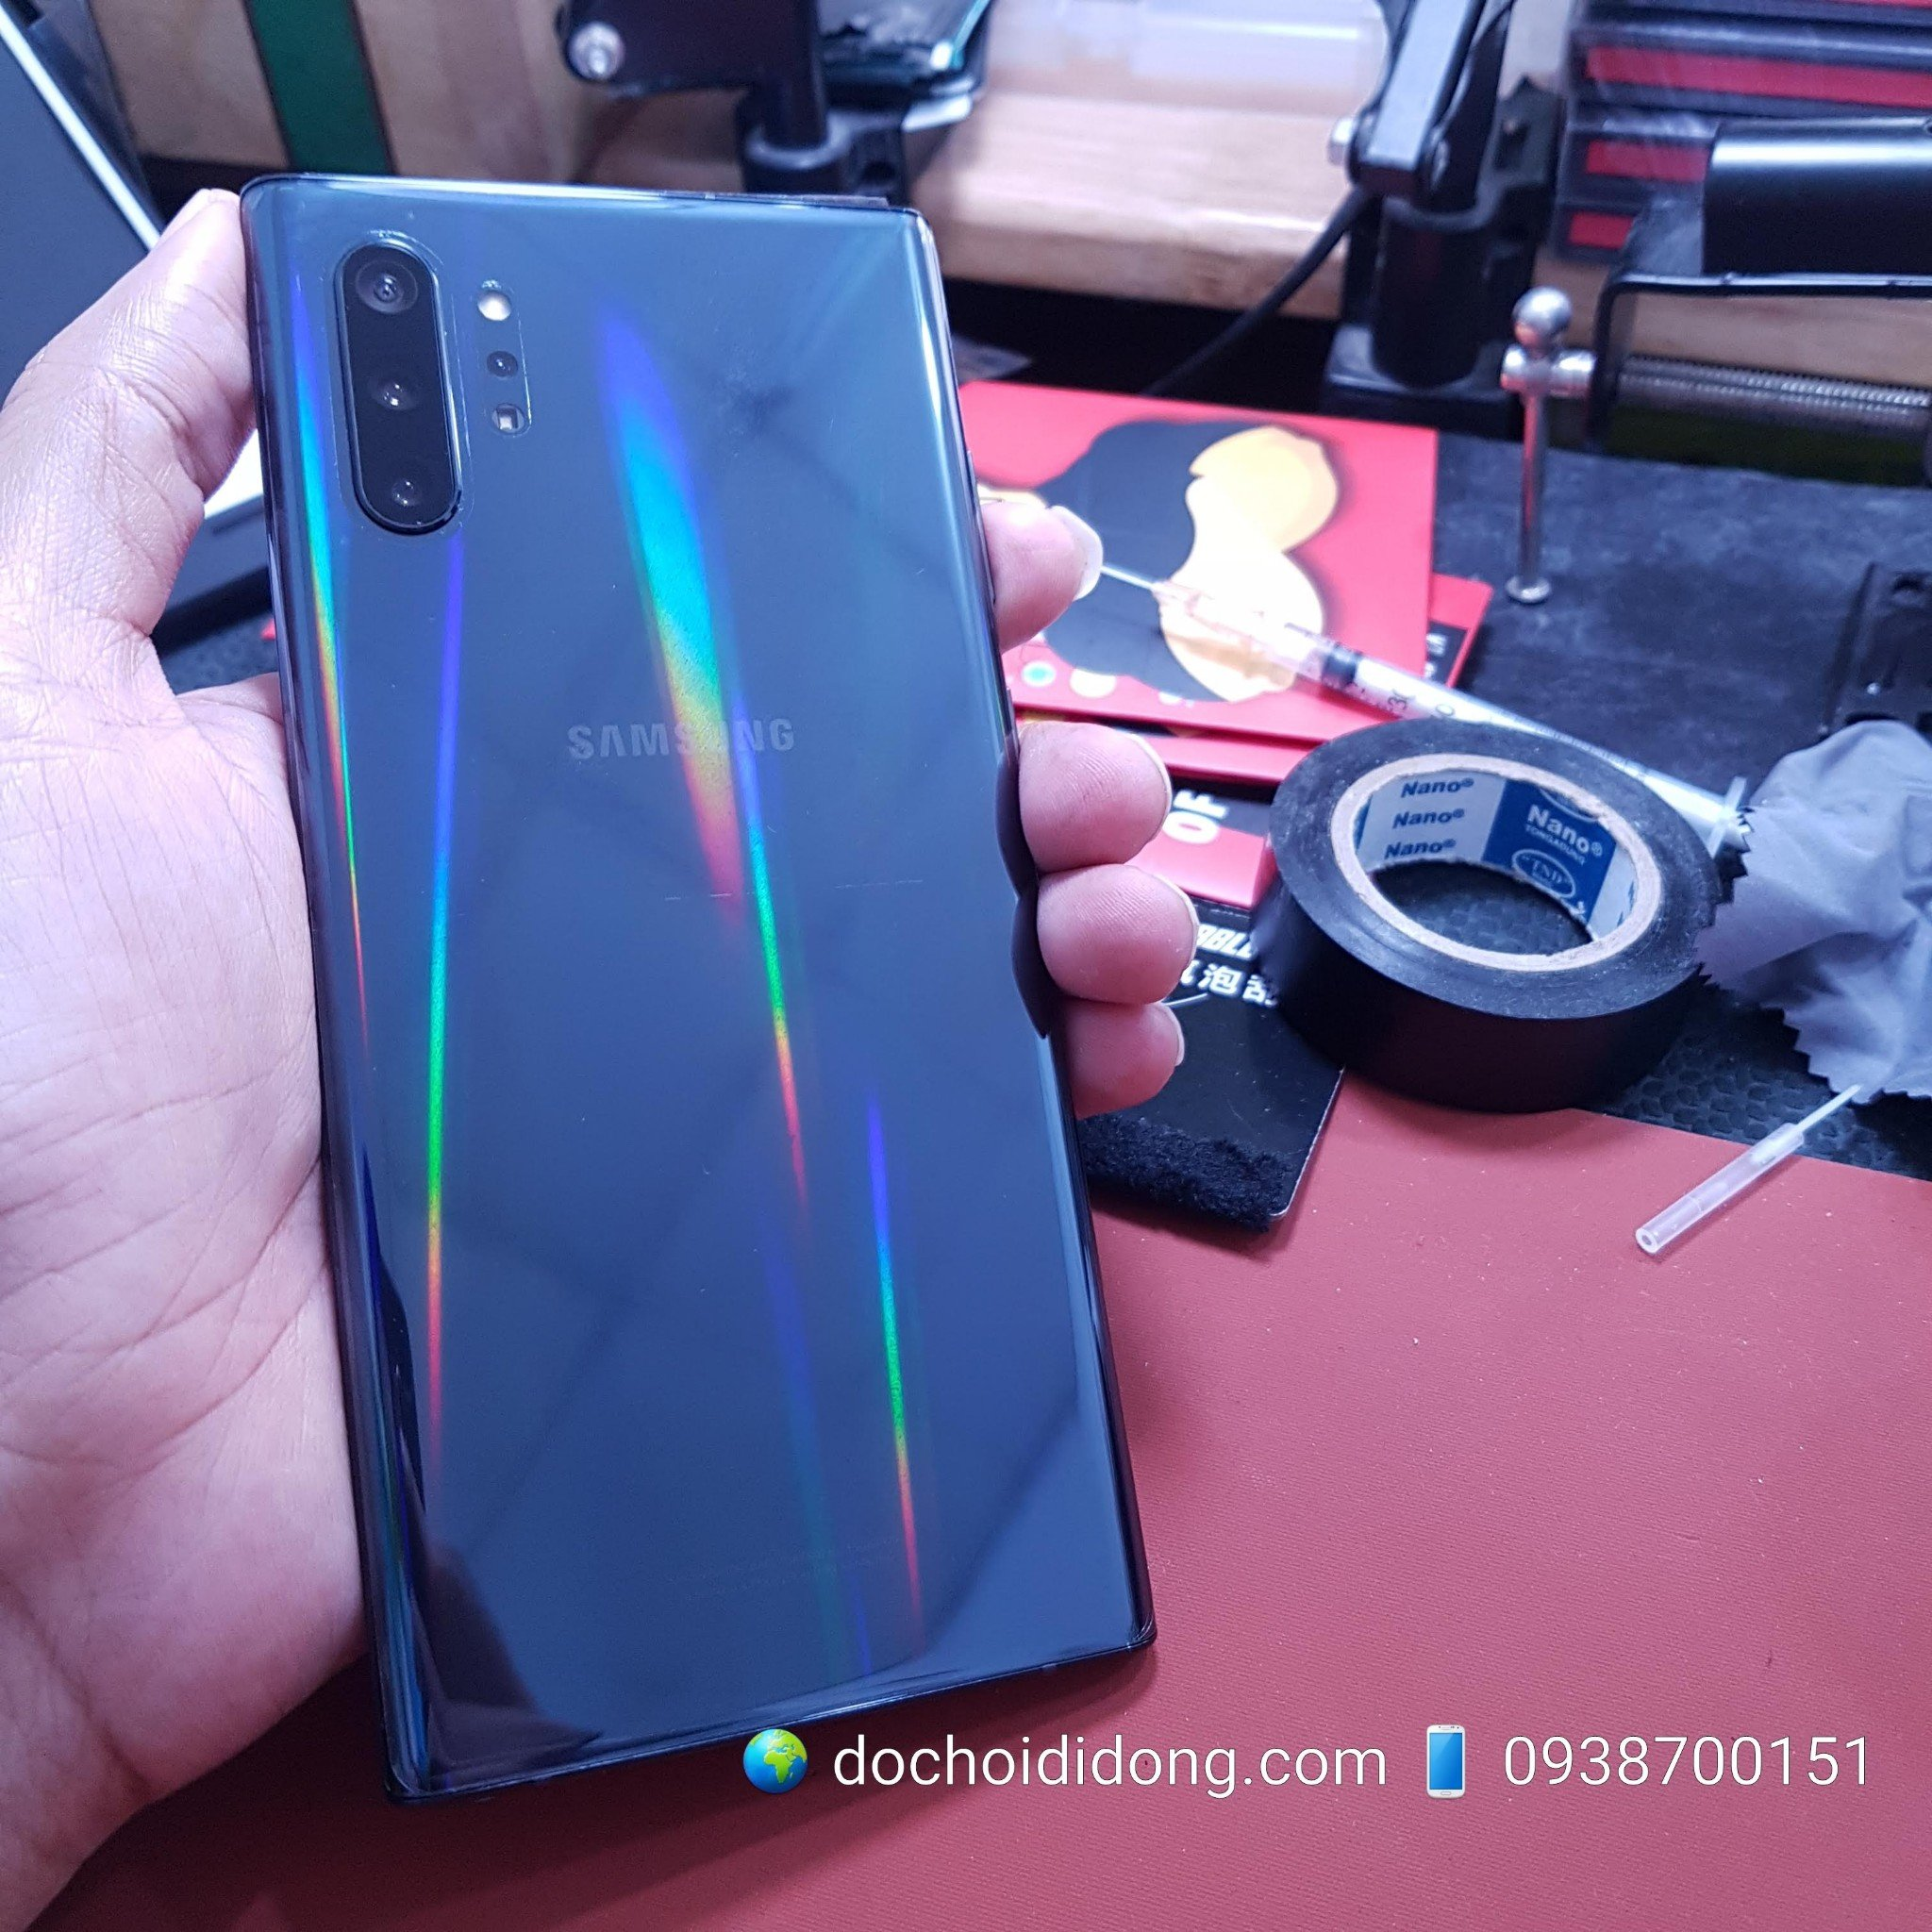 mieng-dan-lung-samsung-note-10-note-10-plus-aurora-doi-mau